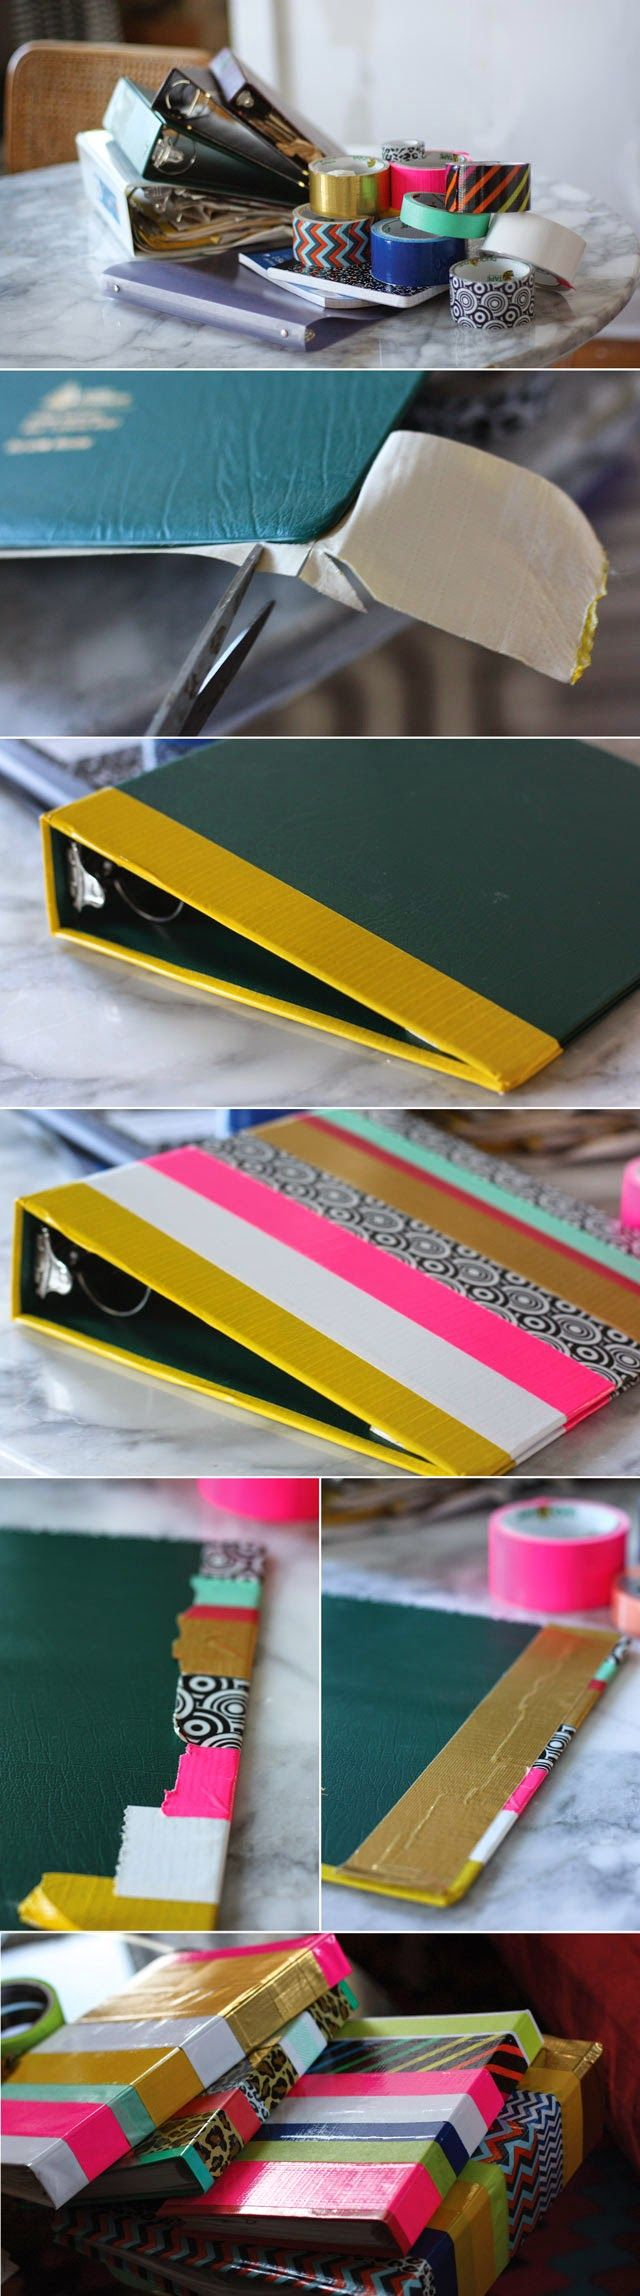 School Supply Makeover with Tape - Aunt Peaches